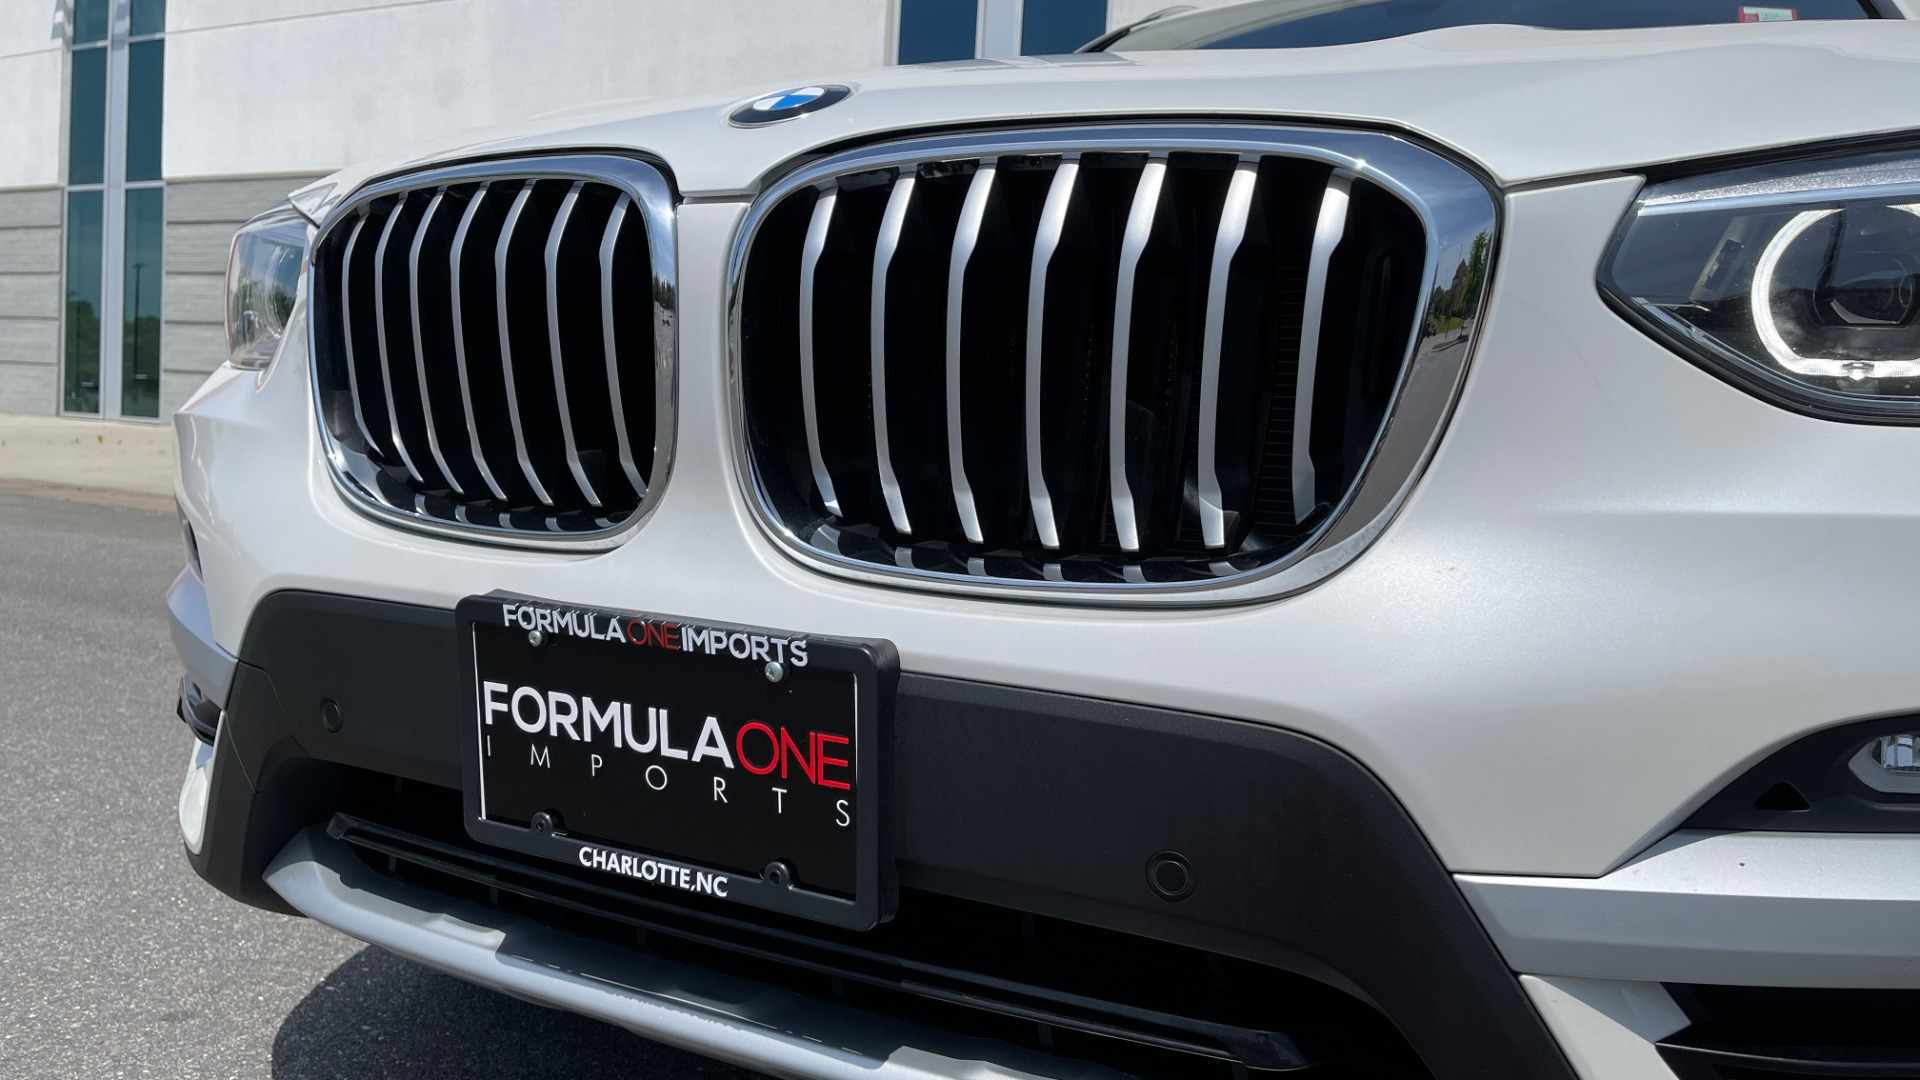 Used 2018 BMW X3 XDRIVE30I PREMIUM / NAV / DRVR ASST / CONV PKG / SUNROOF / REARVIEW for sale $32,695 at Formula Imports in Charlotte NC 28227 12